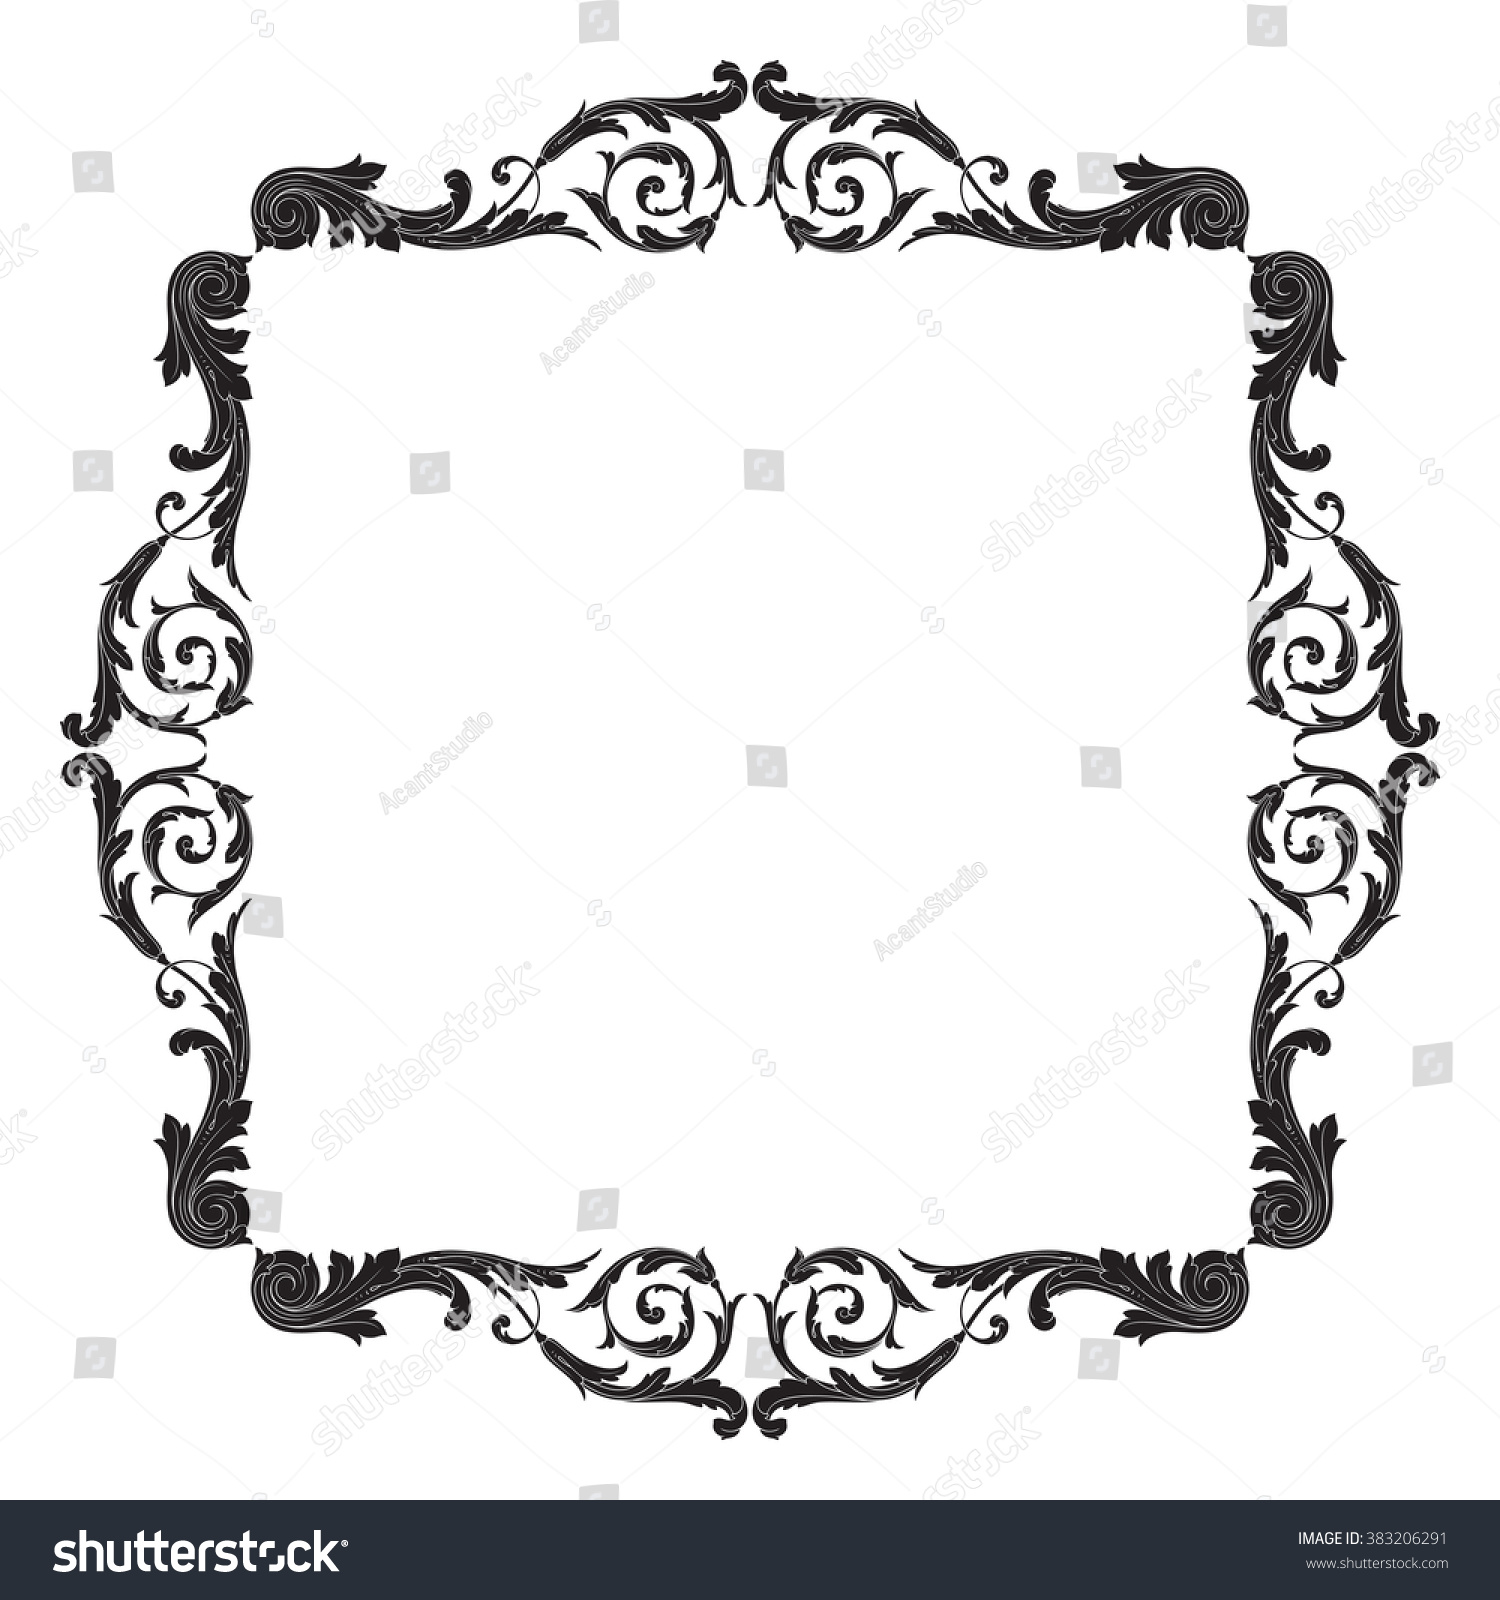 Antique Scroll Vector: Vintage Baroque Frame Scroll Ornament Engraving Stock